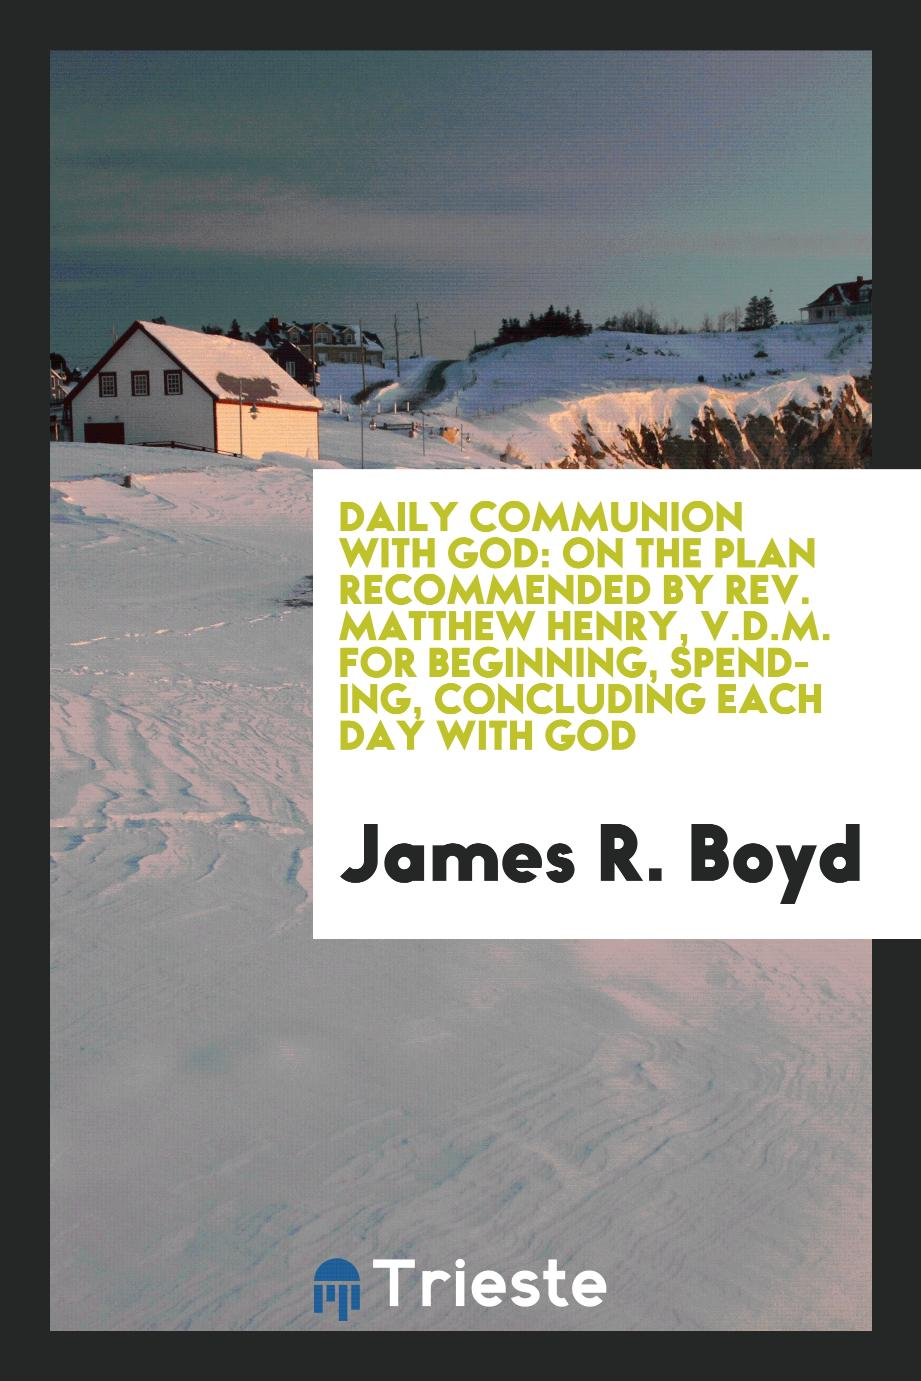 Daily communion with God: on the plan recommended by Rev. Matthew Henry, V.D.M. for beginning, spending, concluding each day with God